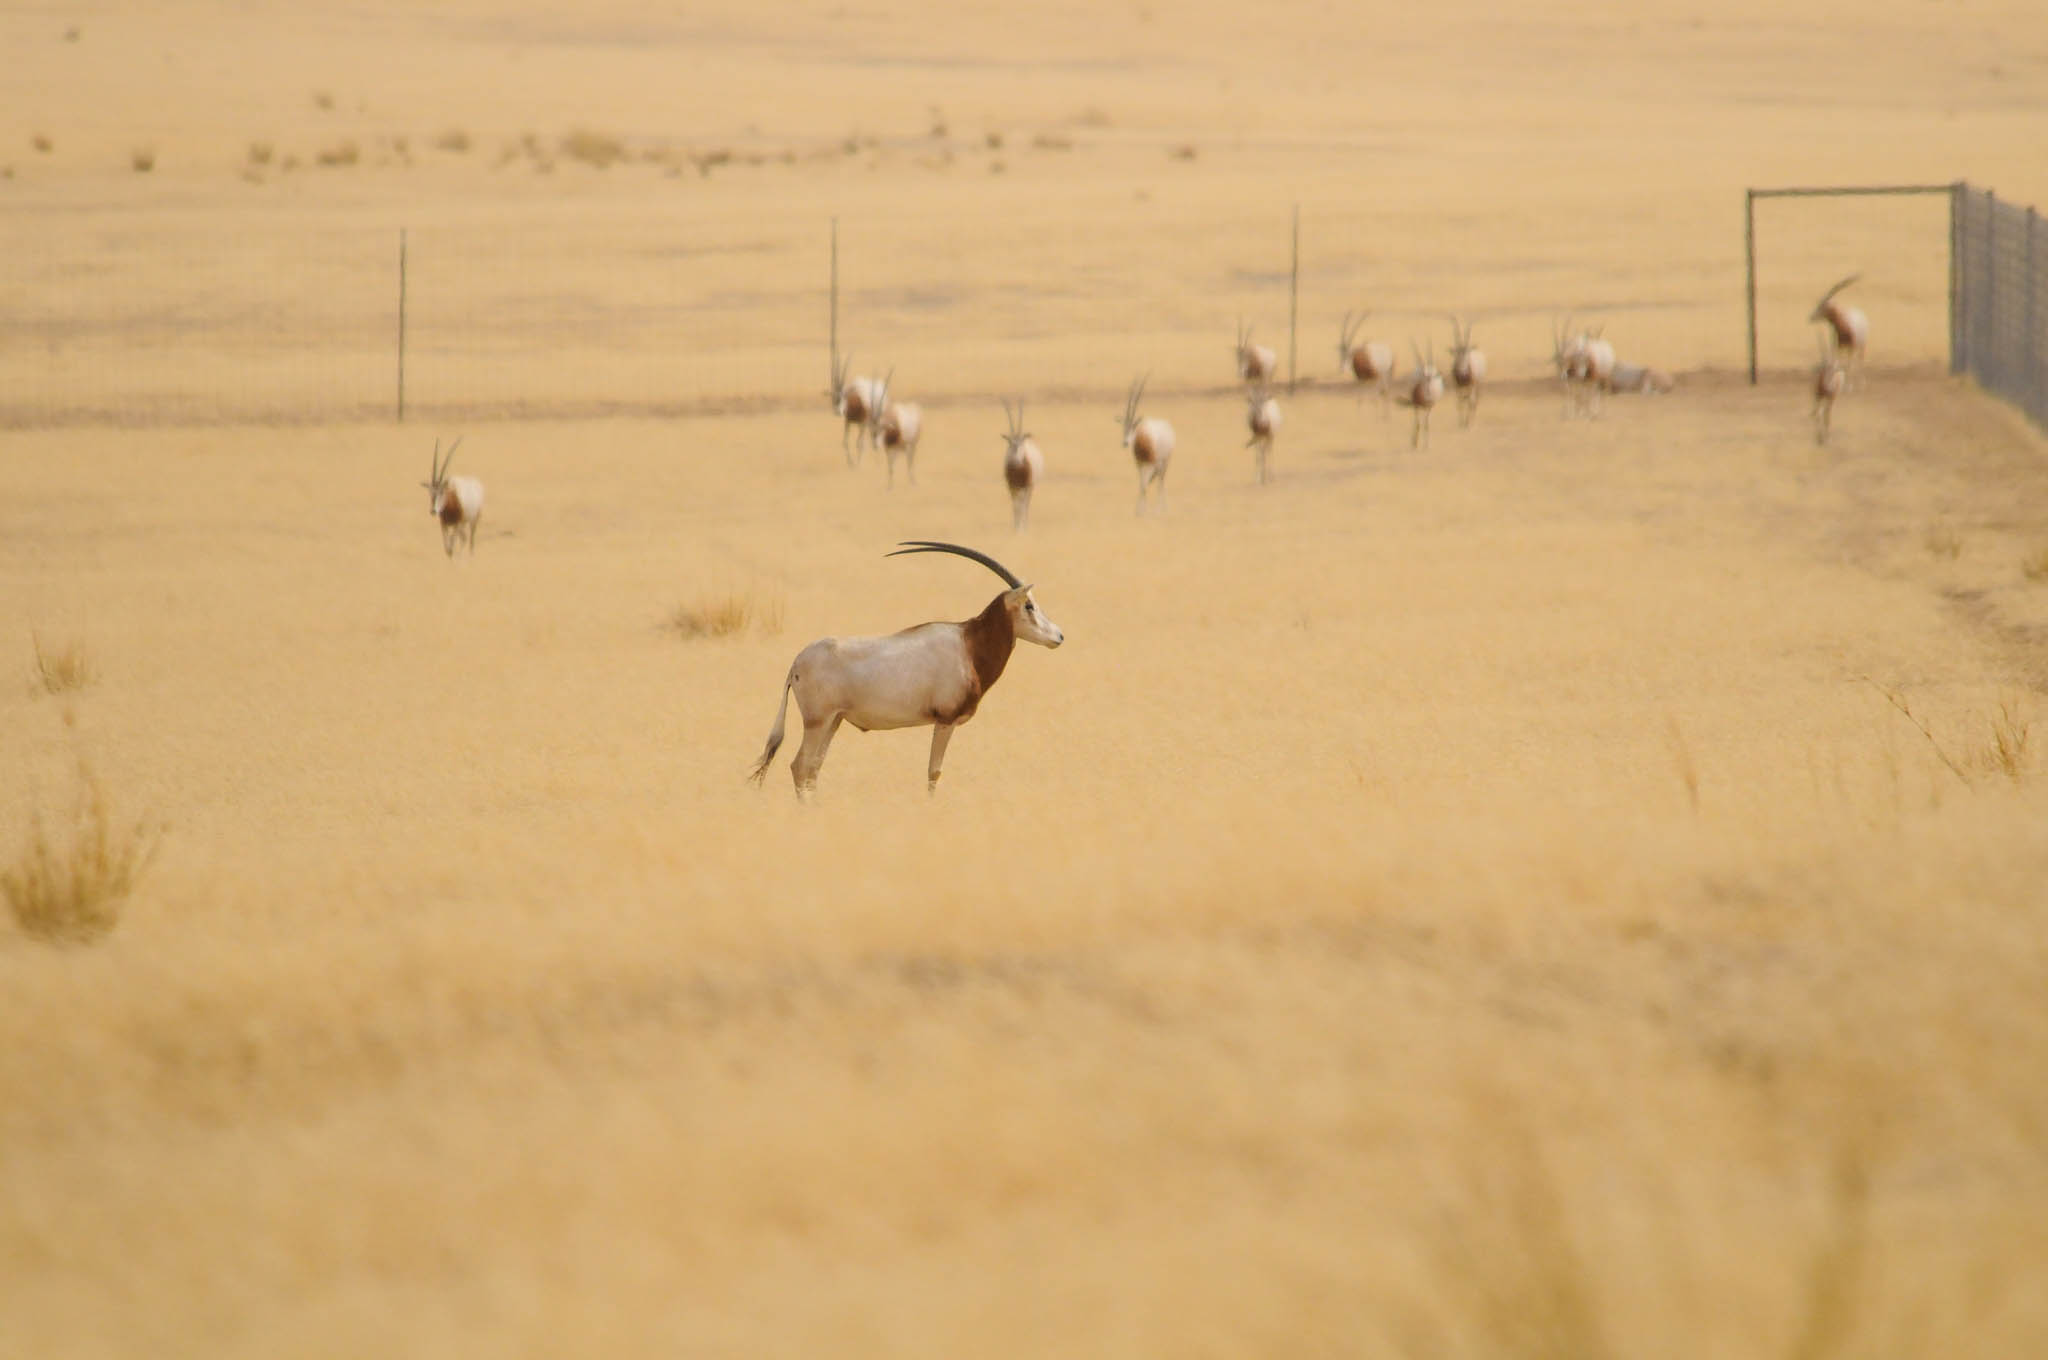 Scimitar-horned oryx standing in enclosed field in Chad (© Environment Agency–Abu Dhabi)